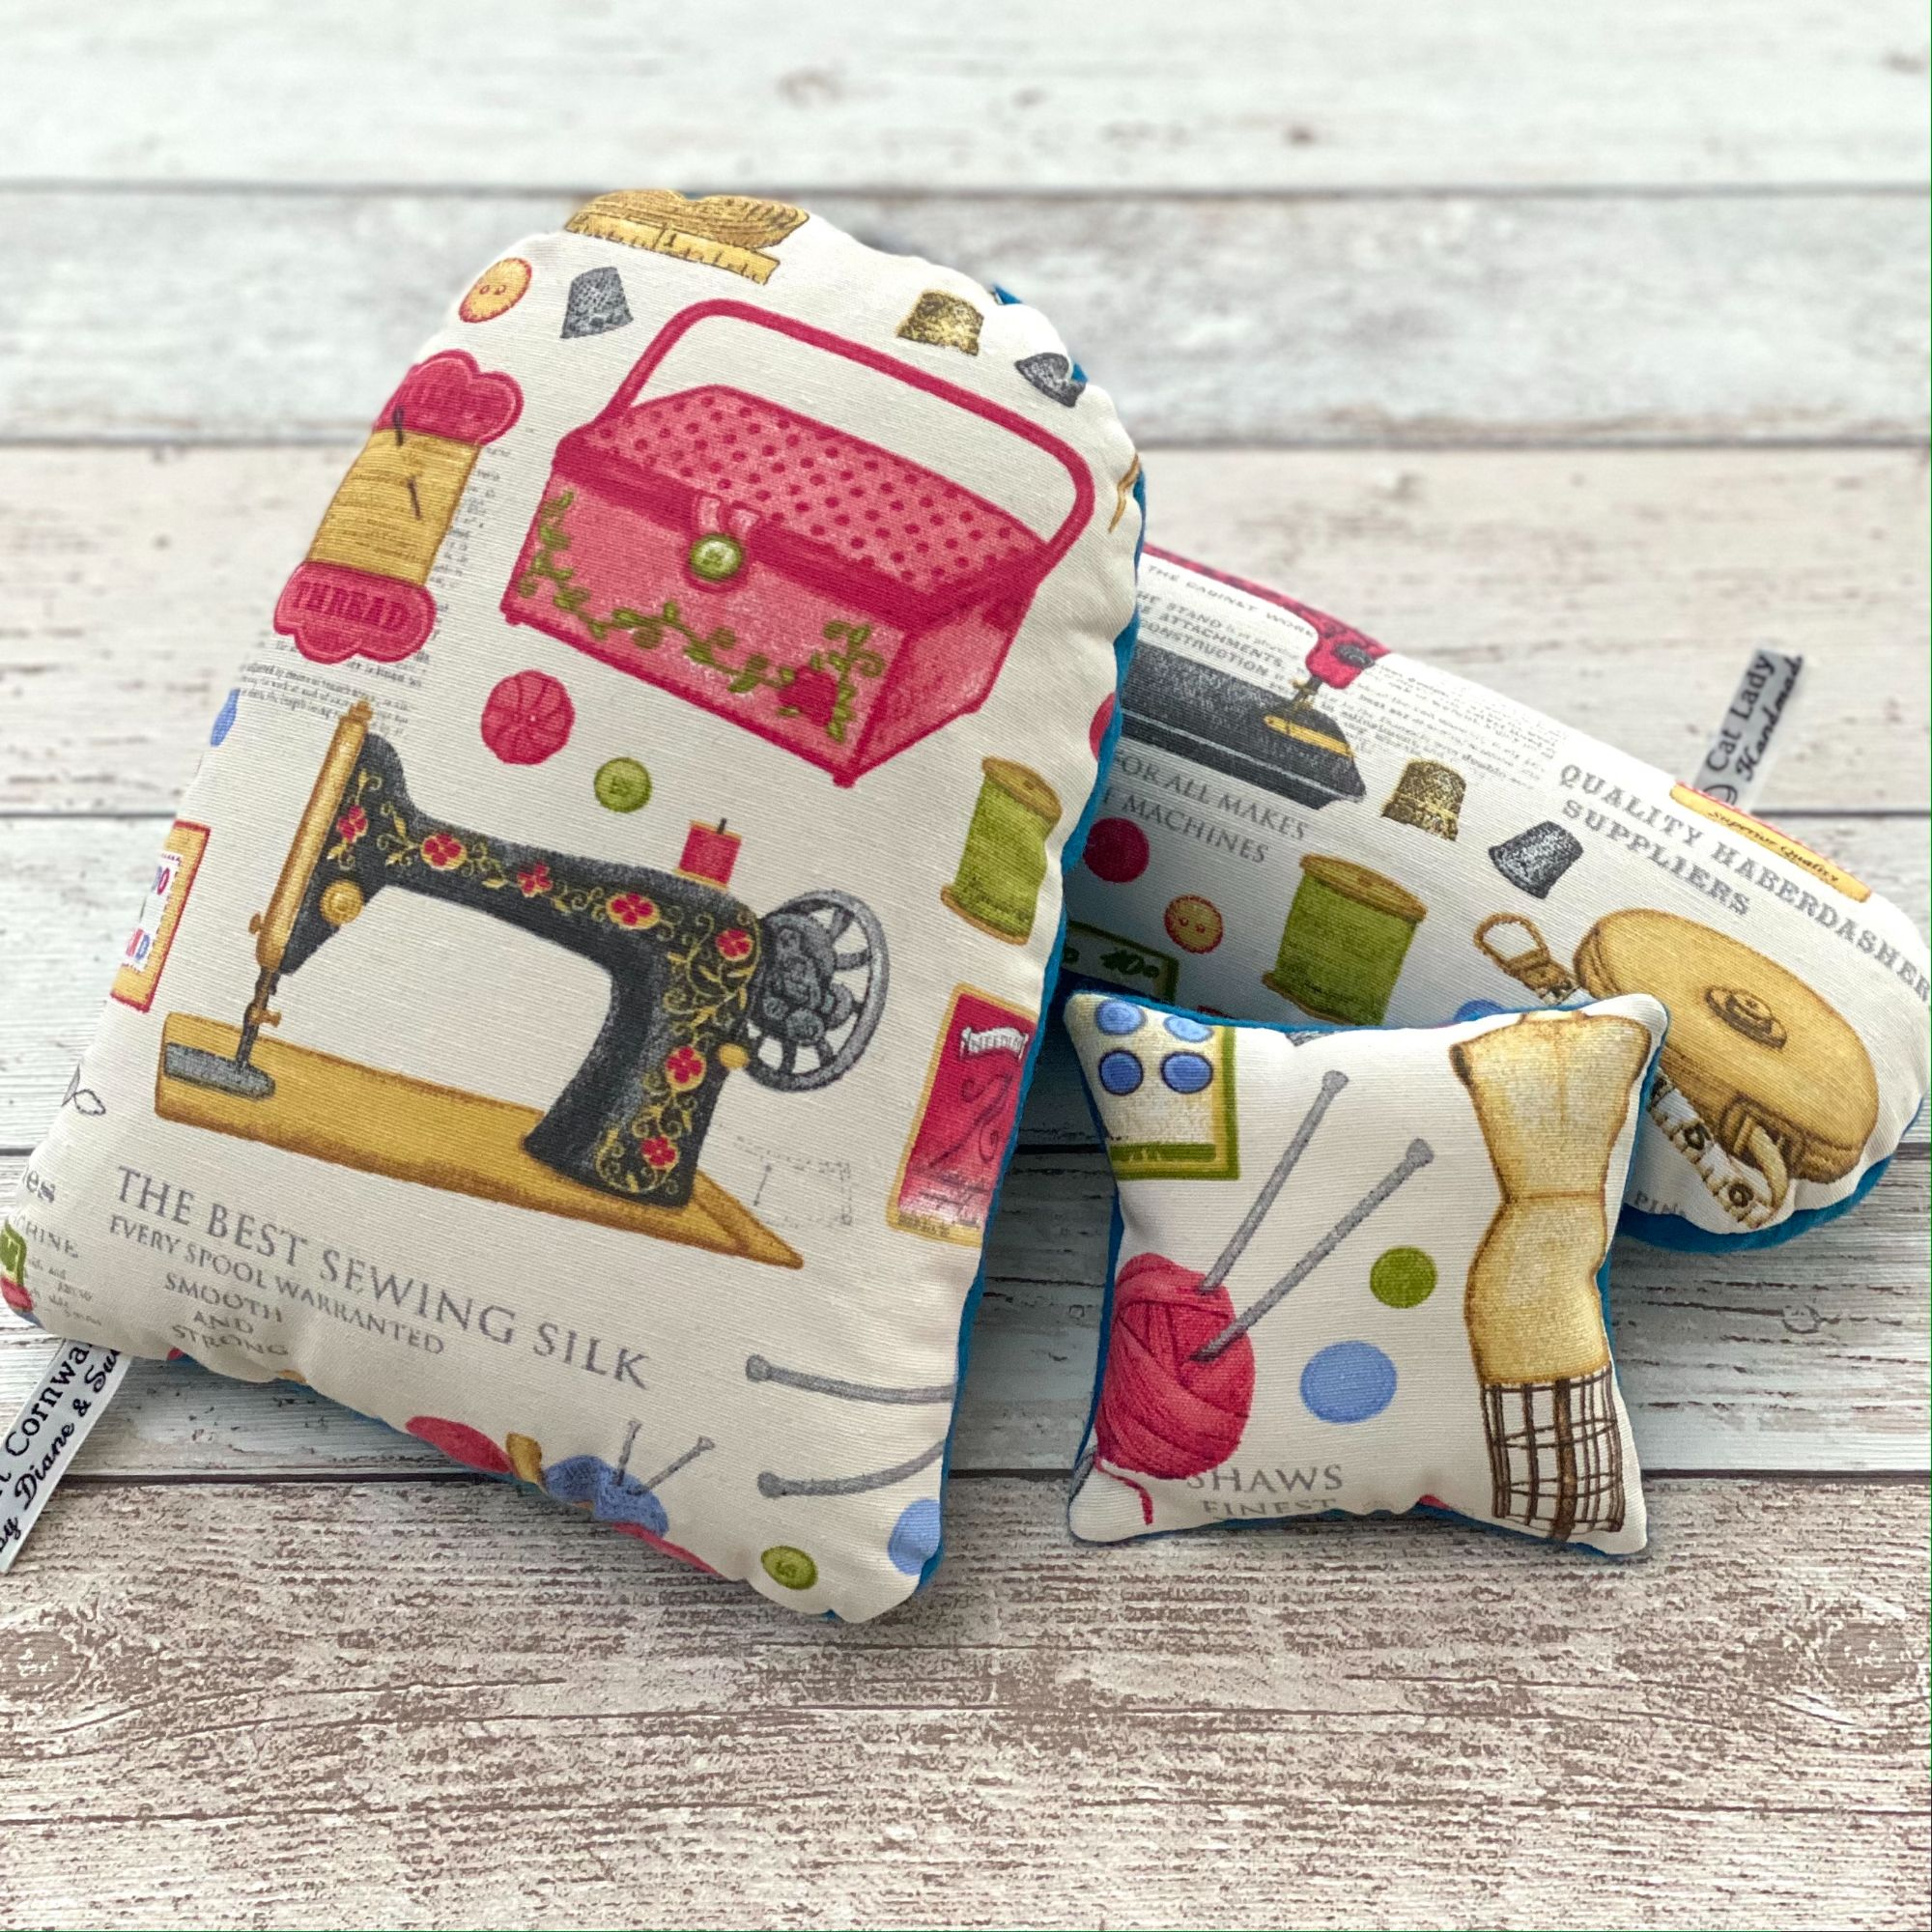 Three handmade sewing aids , a ham, a sleeve press and a pin cushion made with sewing themed fabric.